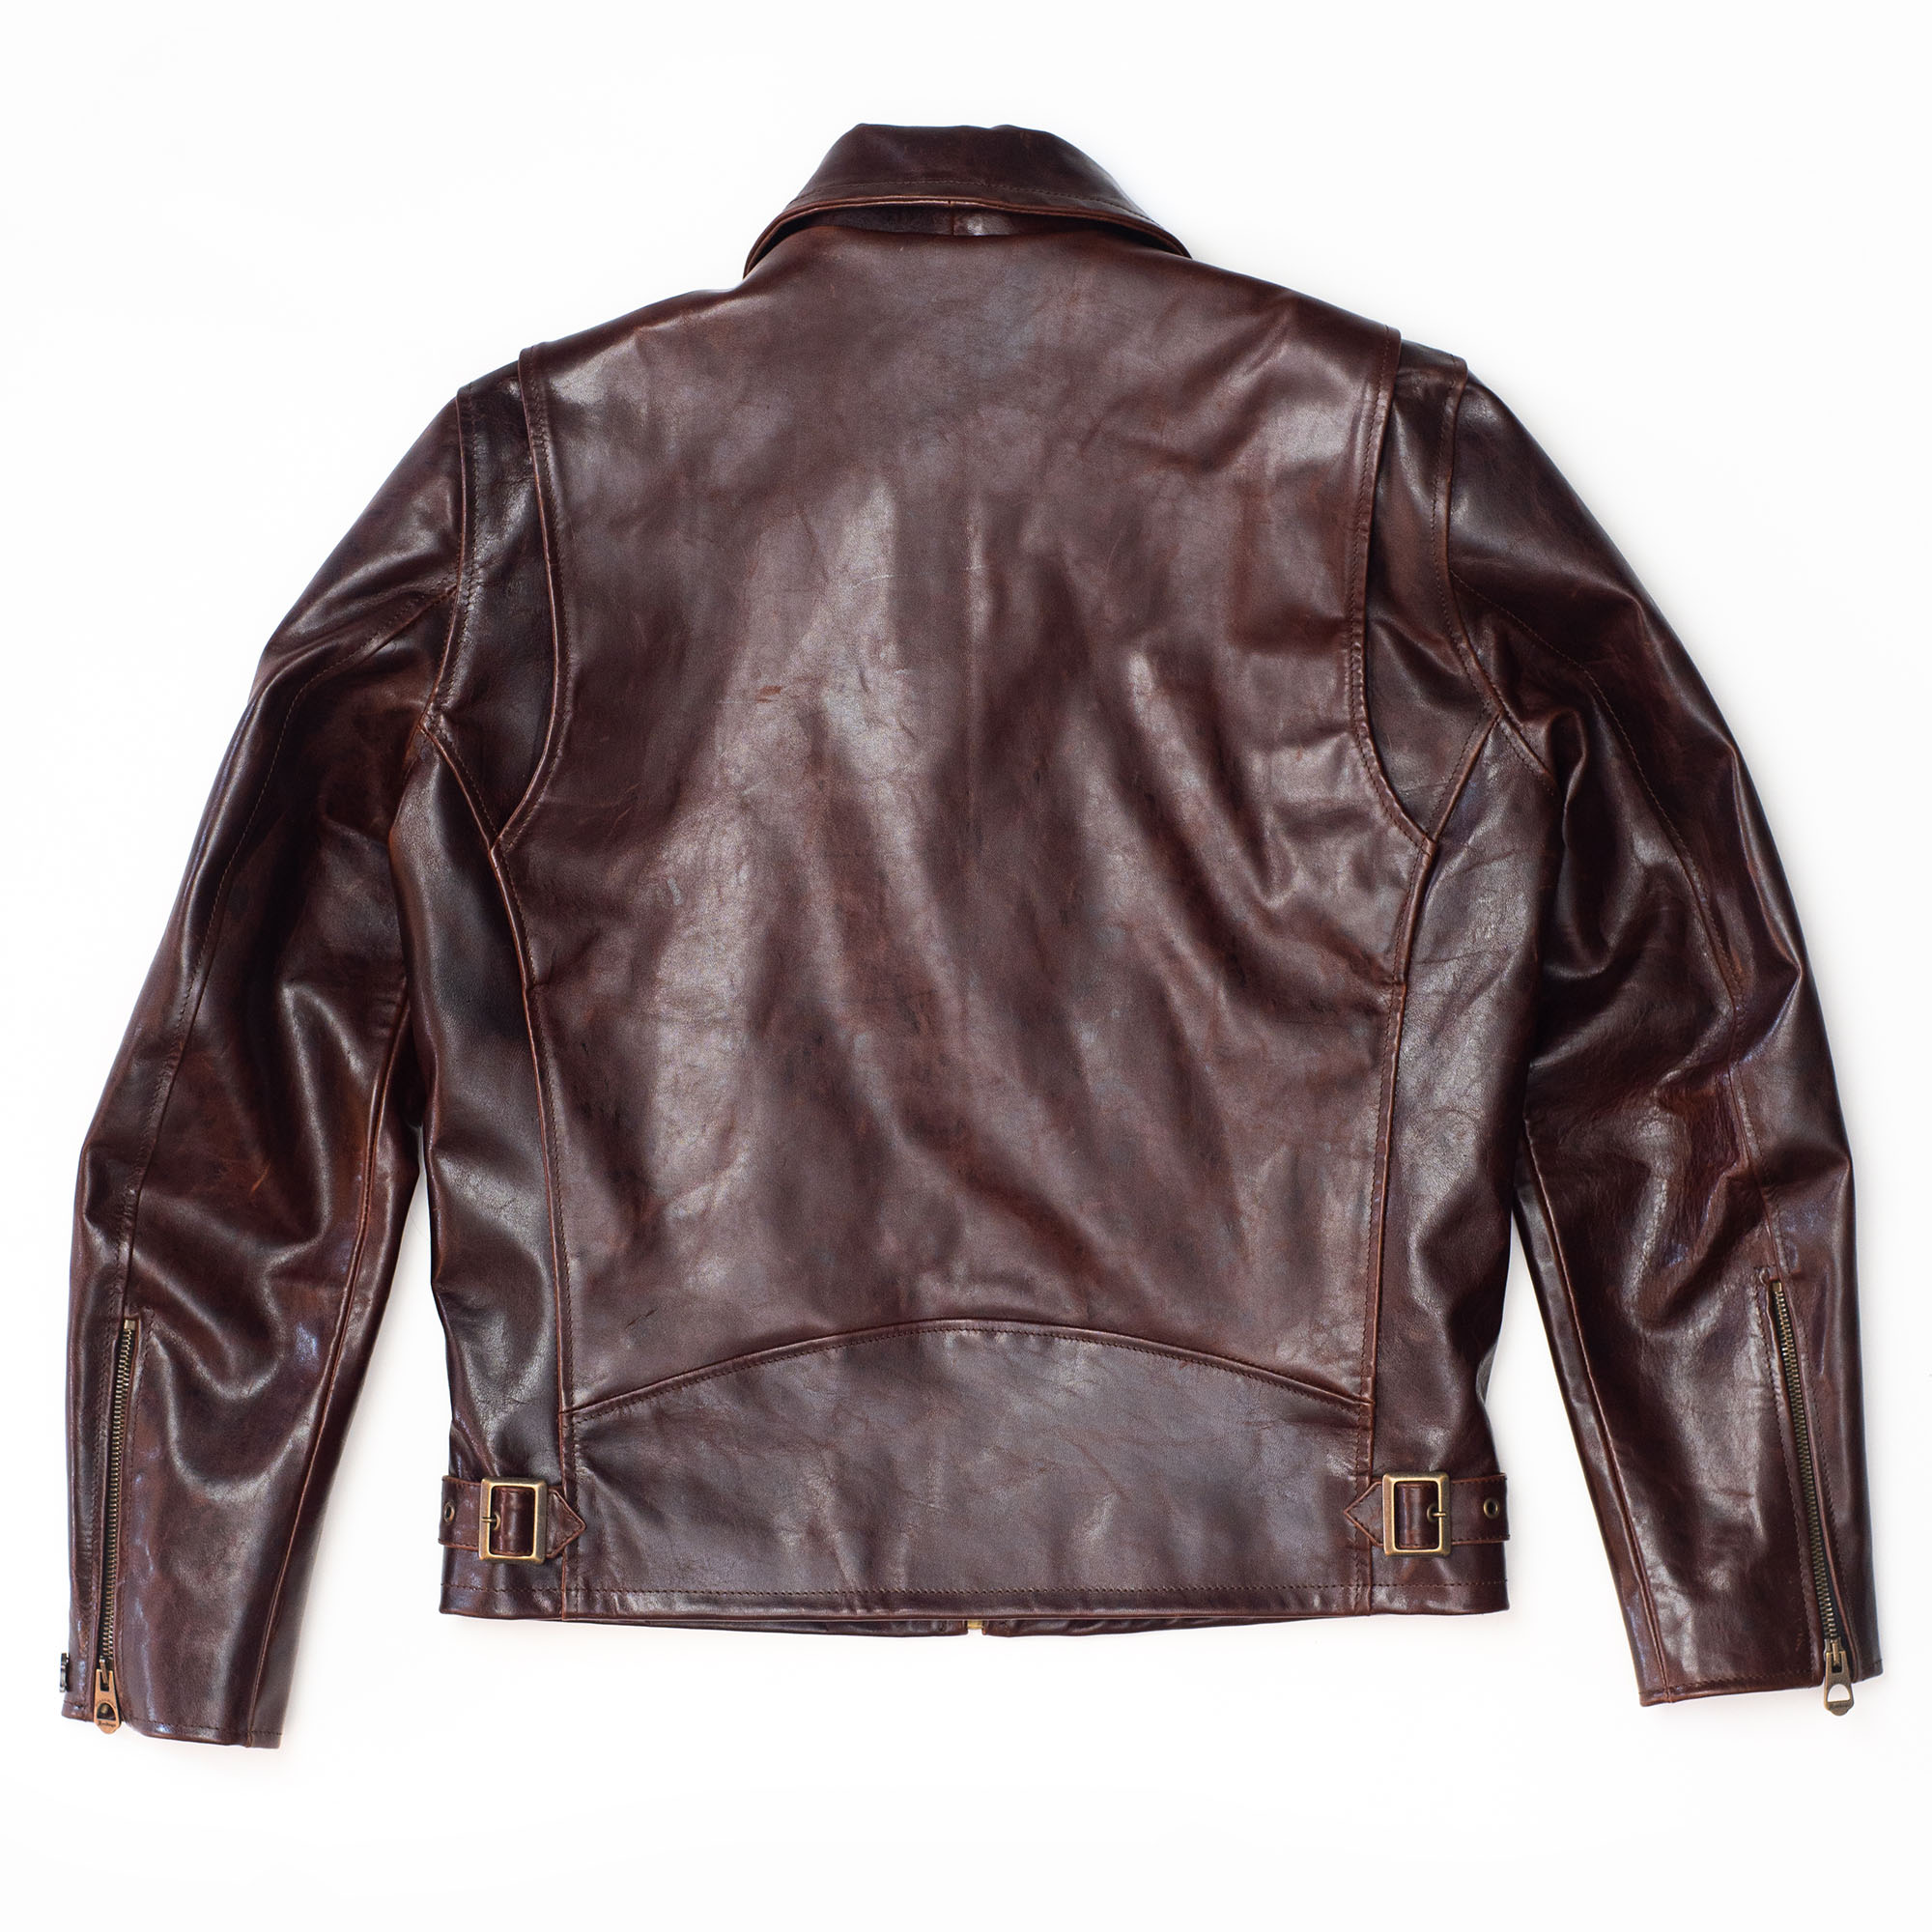 shangri-la-heritage-varenne-whiskey-horsehide-leather-jacket-still-life-back